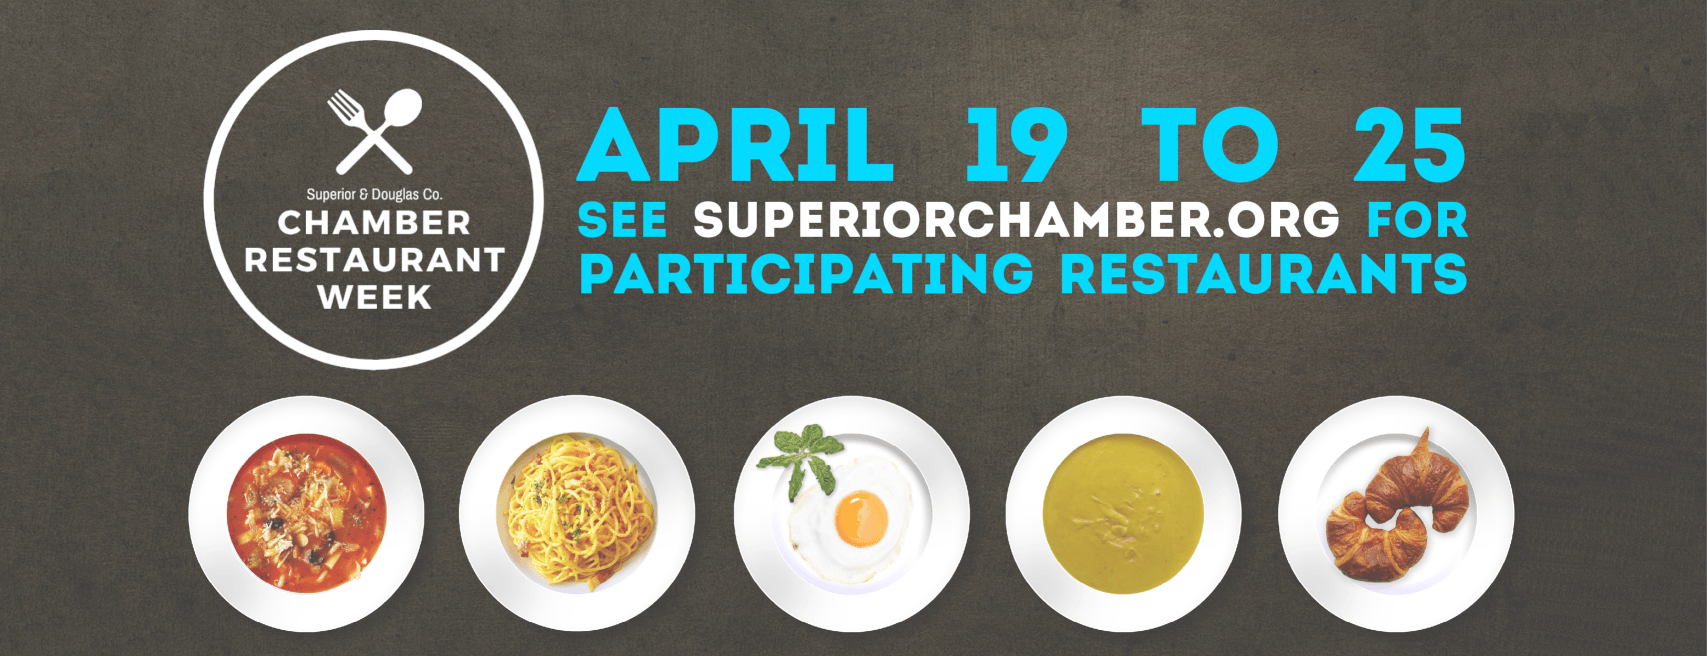 Chamber-Restaurant-Week-Spring-2021-Facebook-Cover-w1708.png